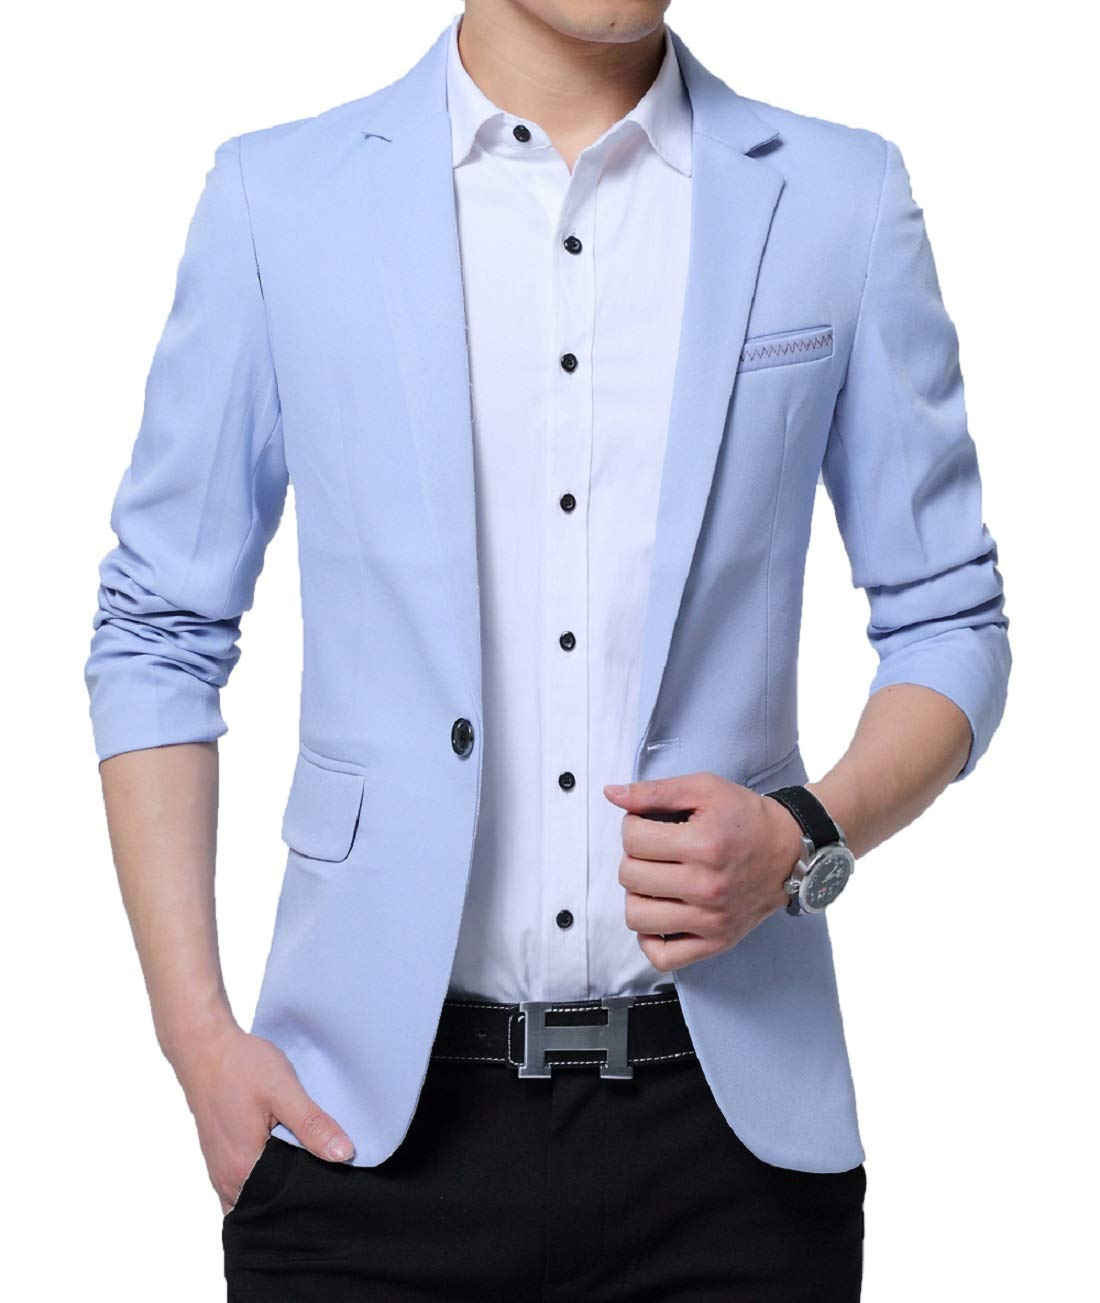 XueYin Men's Slim Fit Suits Casual Wear Blazer Jacket(Sky Blue,M Size) by XueYin